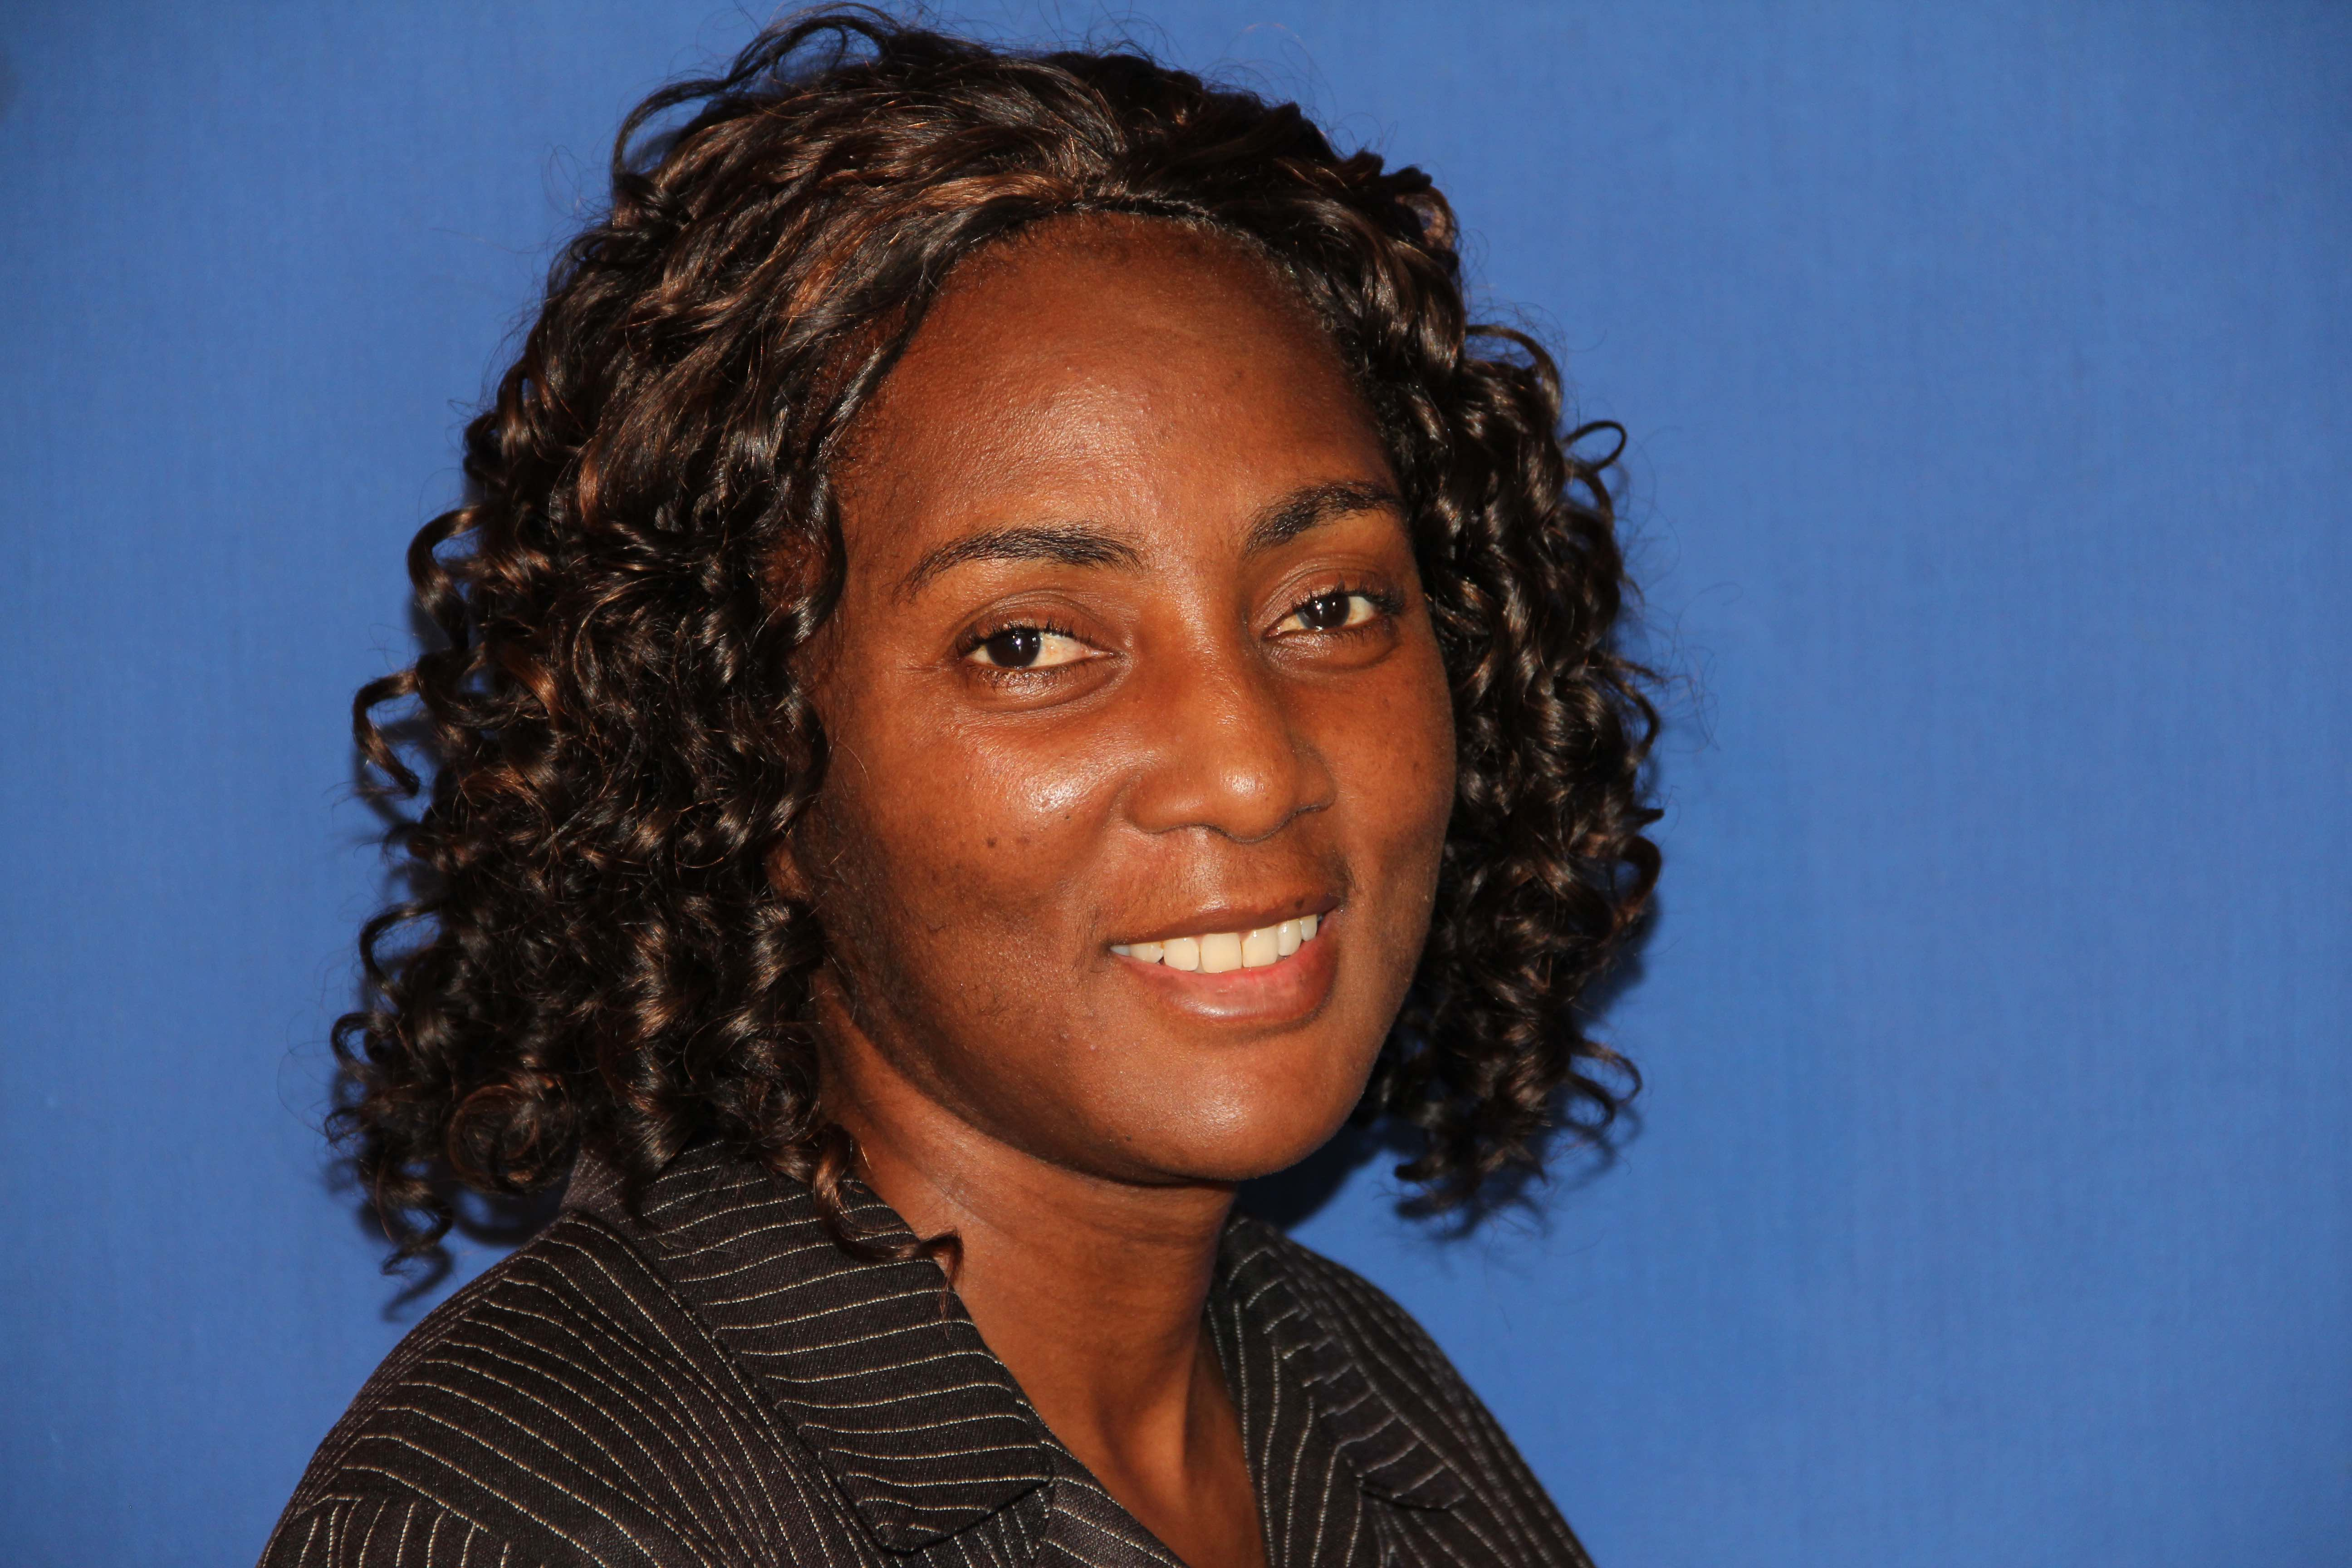 Mrs. Angela Delpeche, Director at the Small Enterprise Development Unit Small Enterprise Development Unit in the Ministry of Finance in the Nevis Island Administration (file photo)